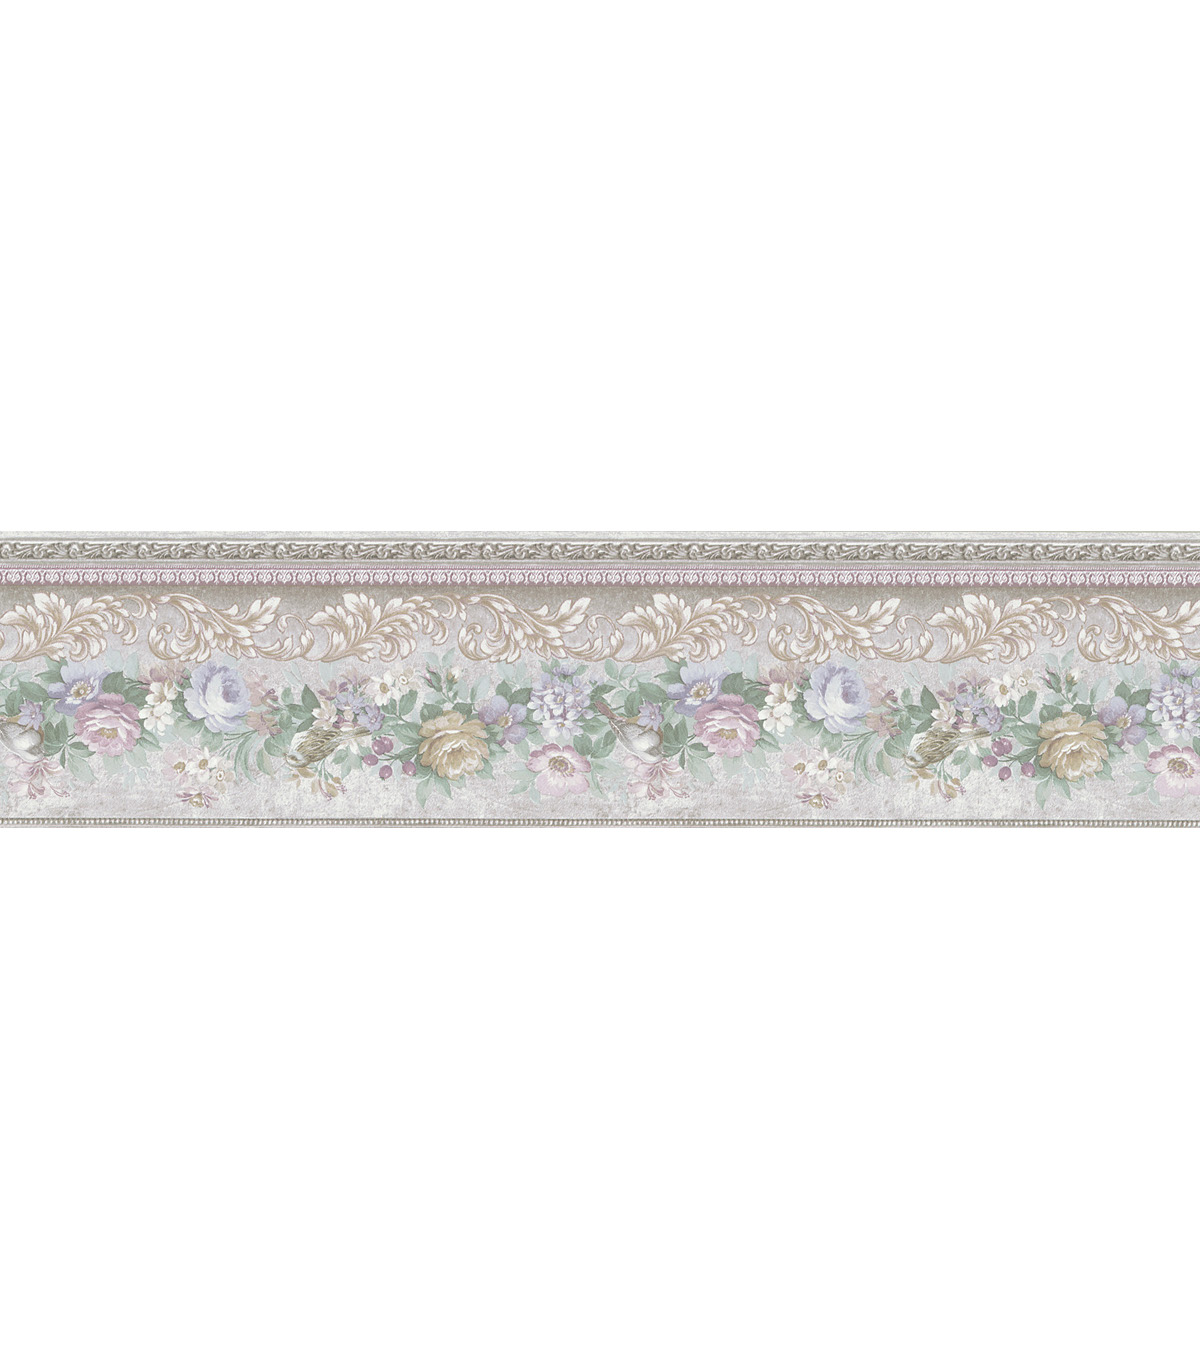 Birded Floral Scroll  Wallpaper Border, Multicolor Sample